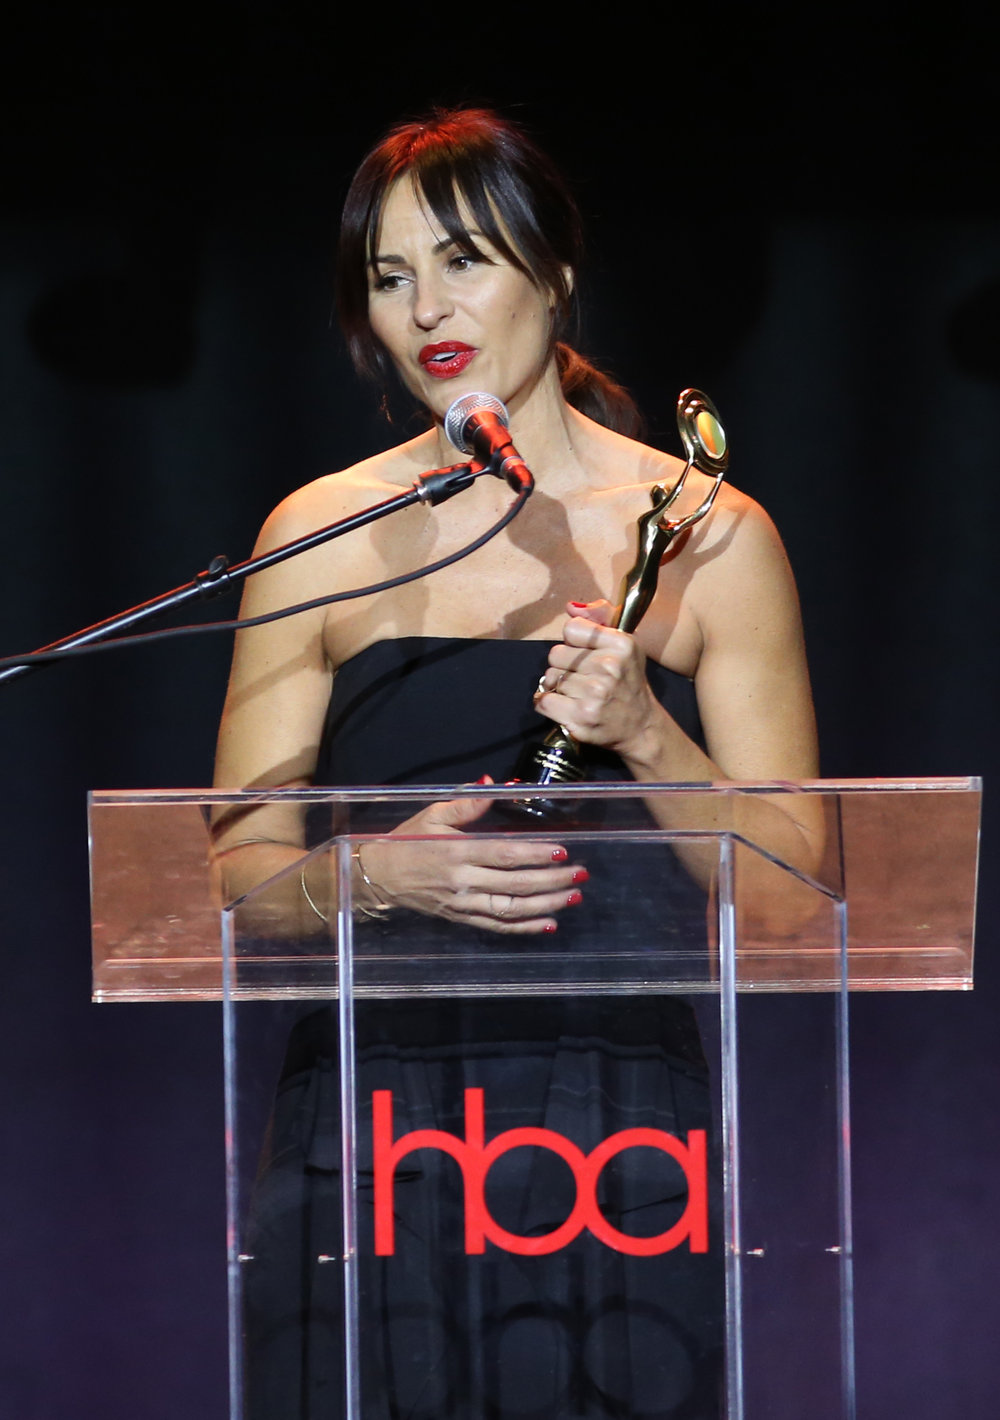 Carola Gonzalez  | Feb 25, 2018, Hollywood Beauty Awards held at the Avalon